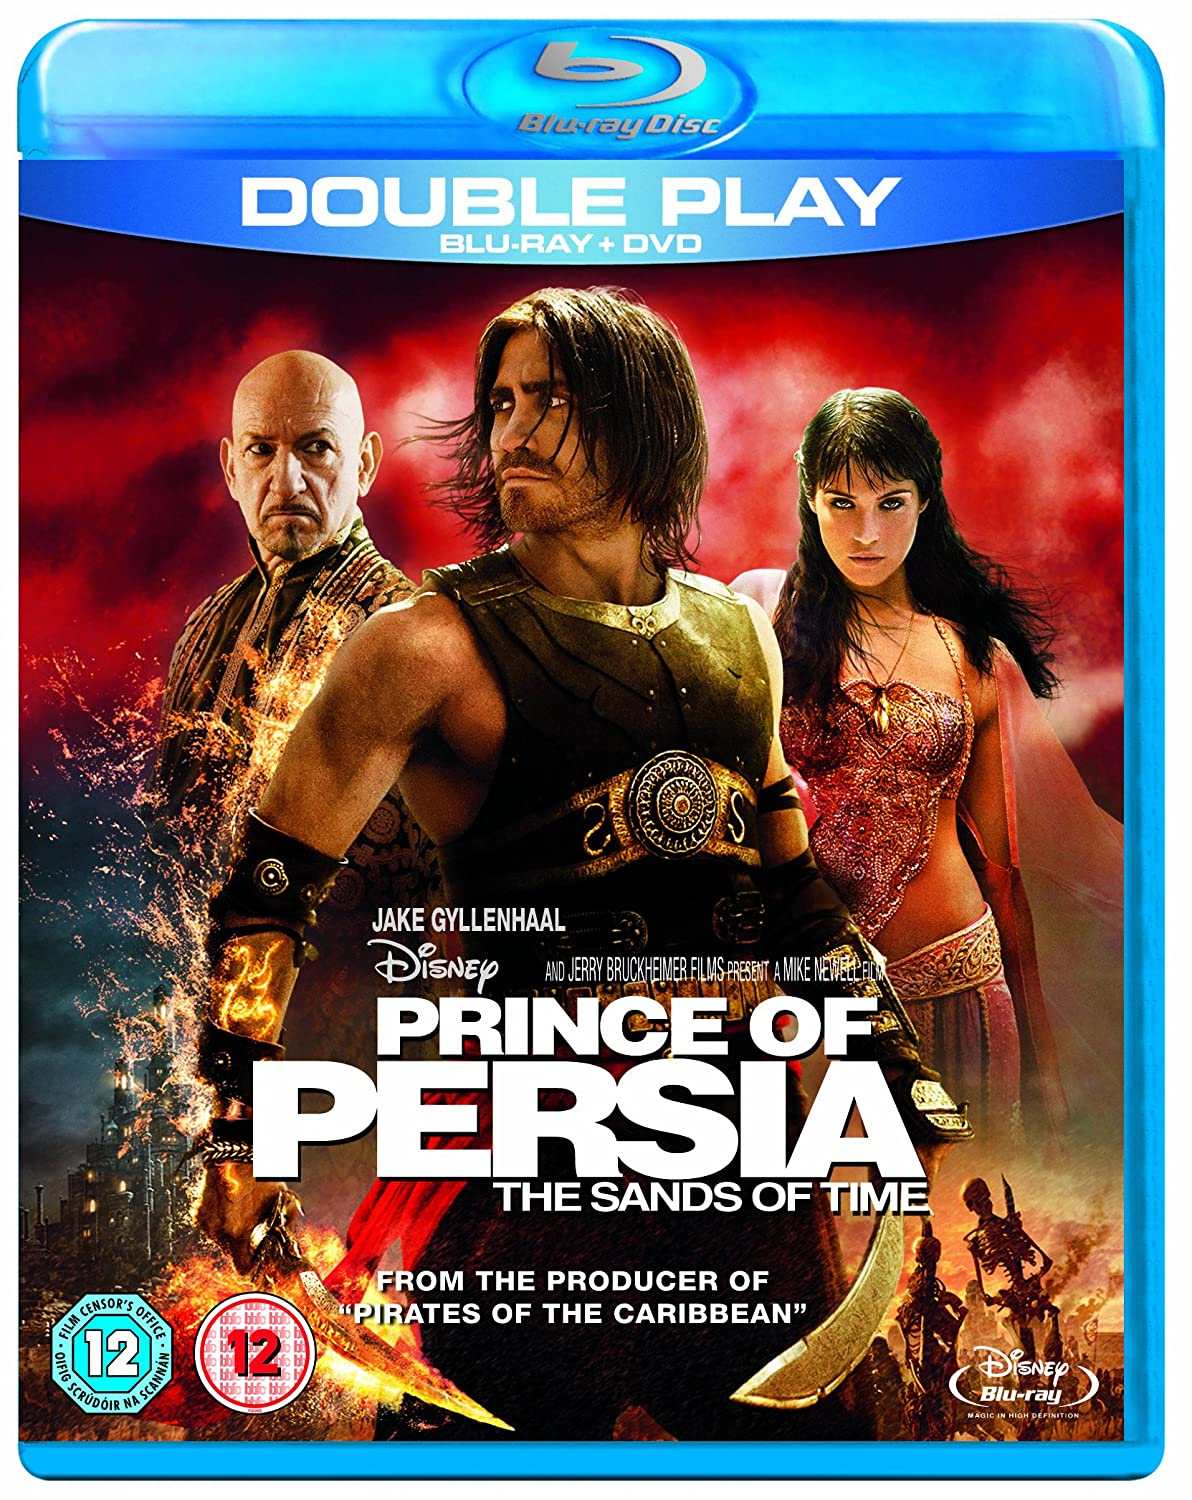 Download Prince Of Persia The Sands Of Time 2010 1080p Bluray x264 anoX Torrent